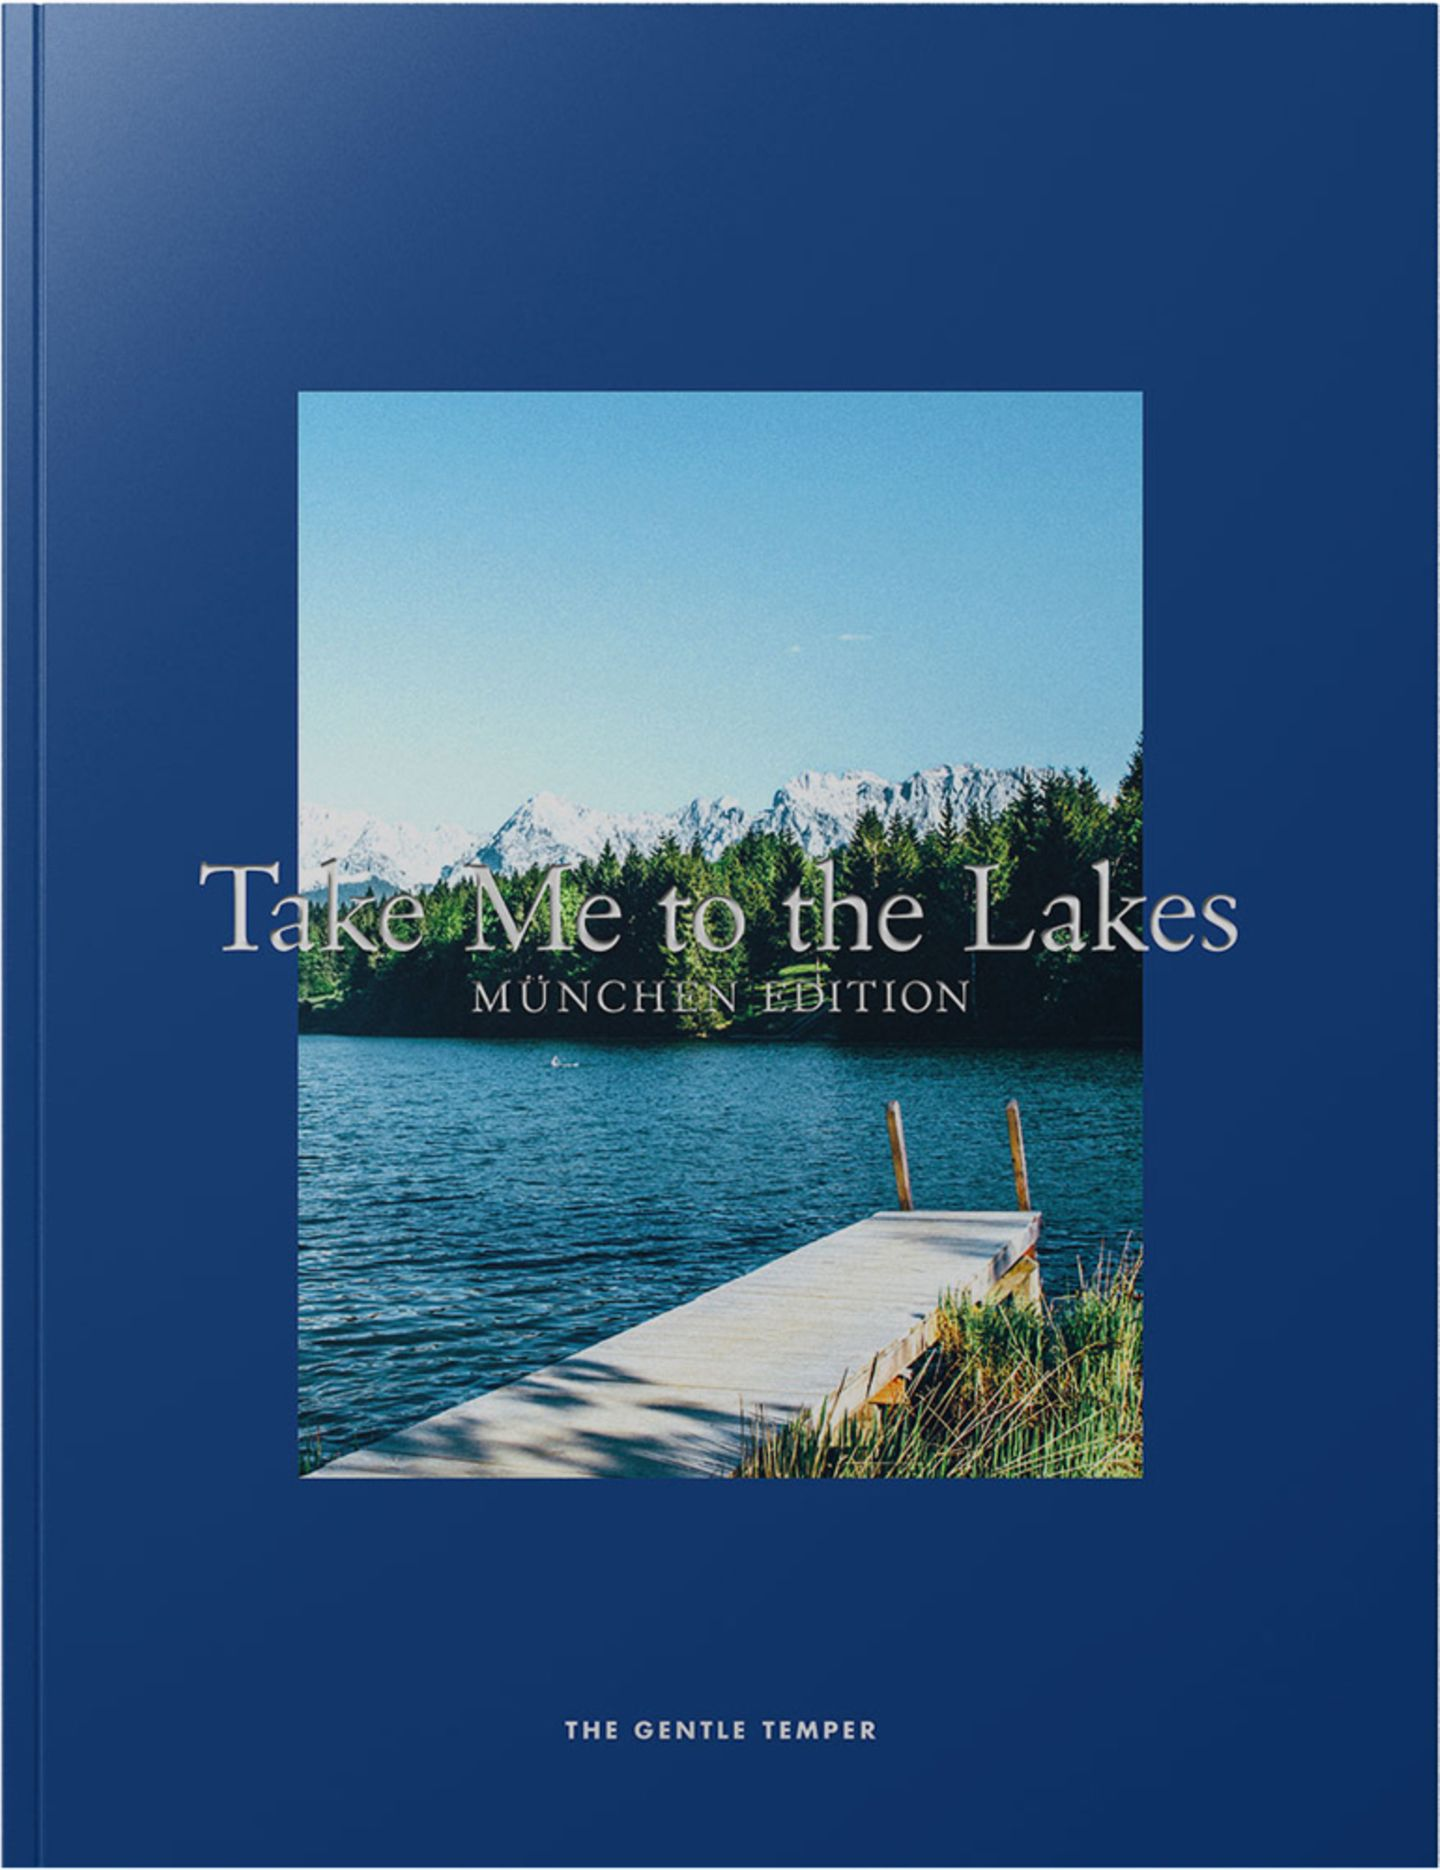 Take Me to the Lakes - München Edition